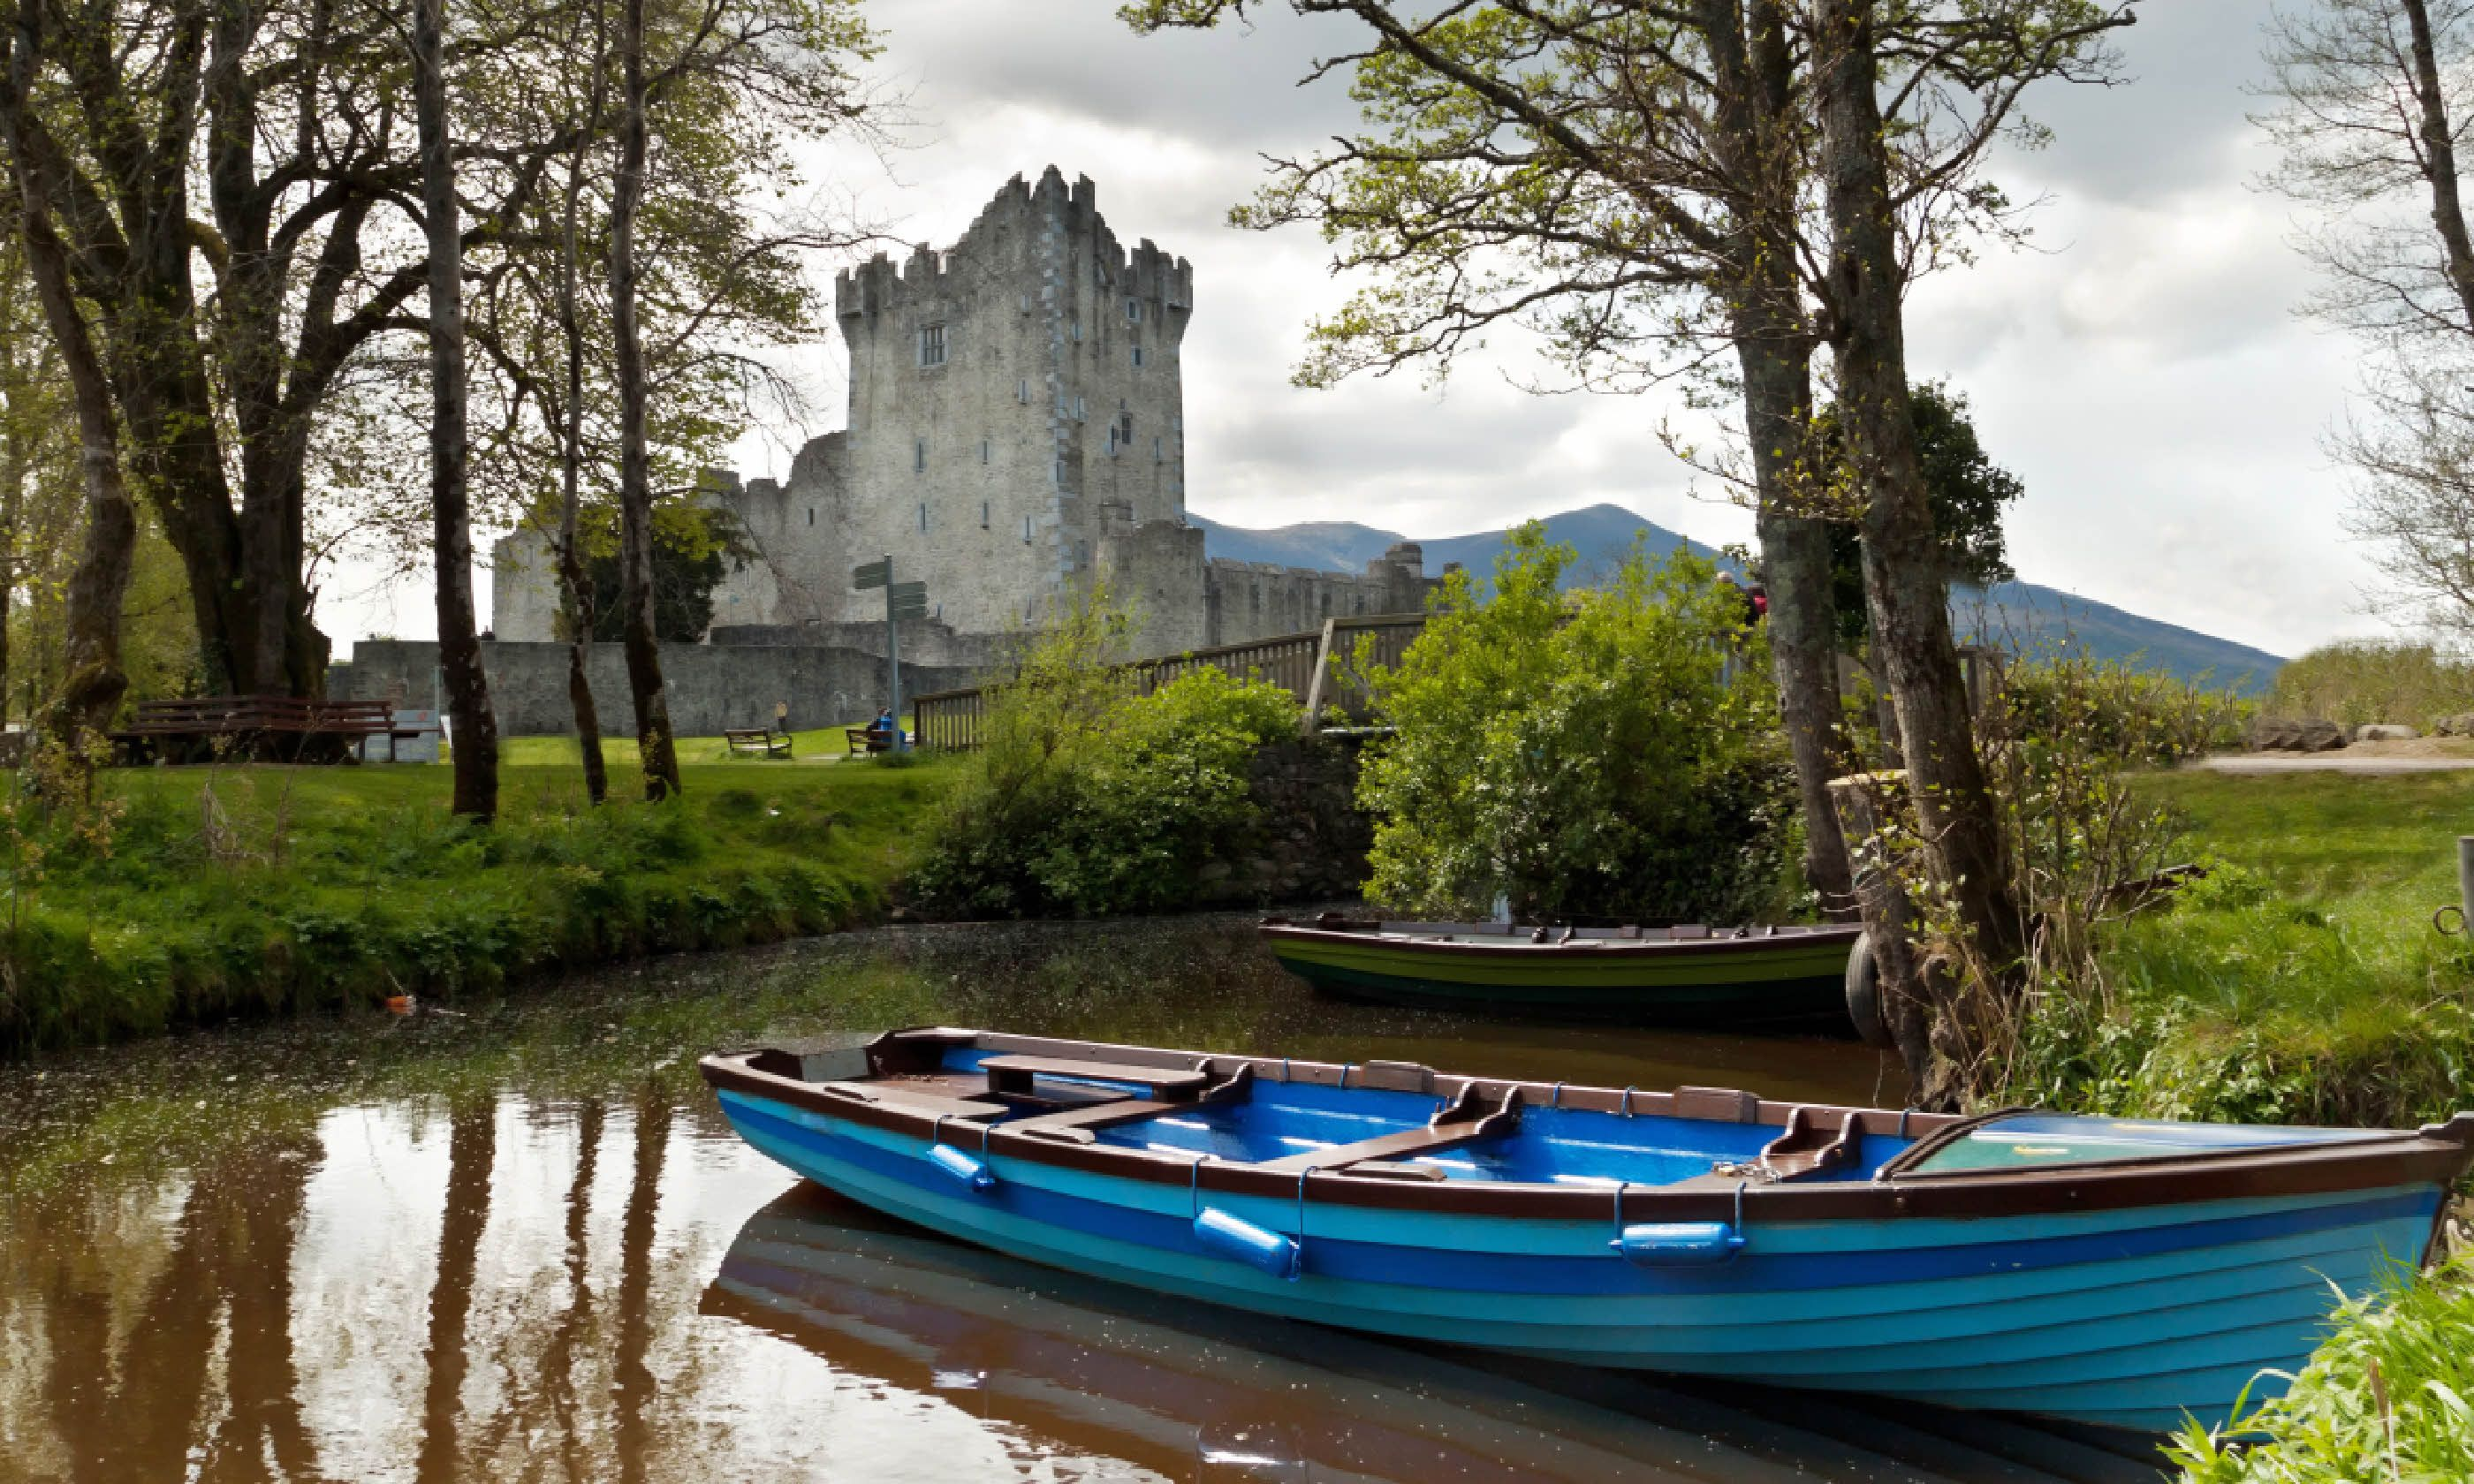 Ross castle in Killarney (Shutterstock)